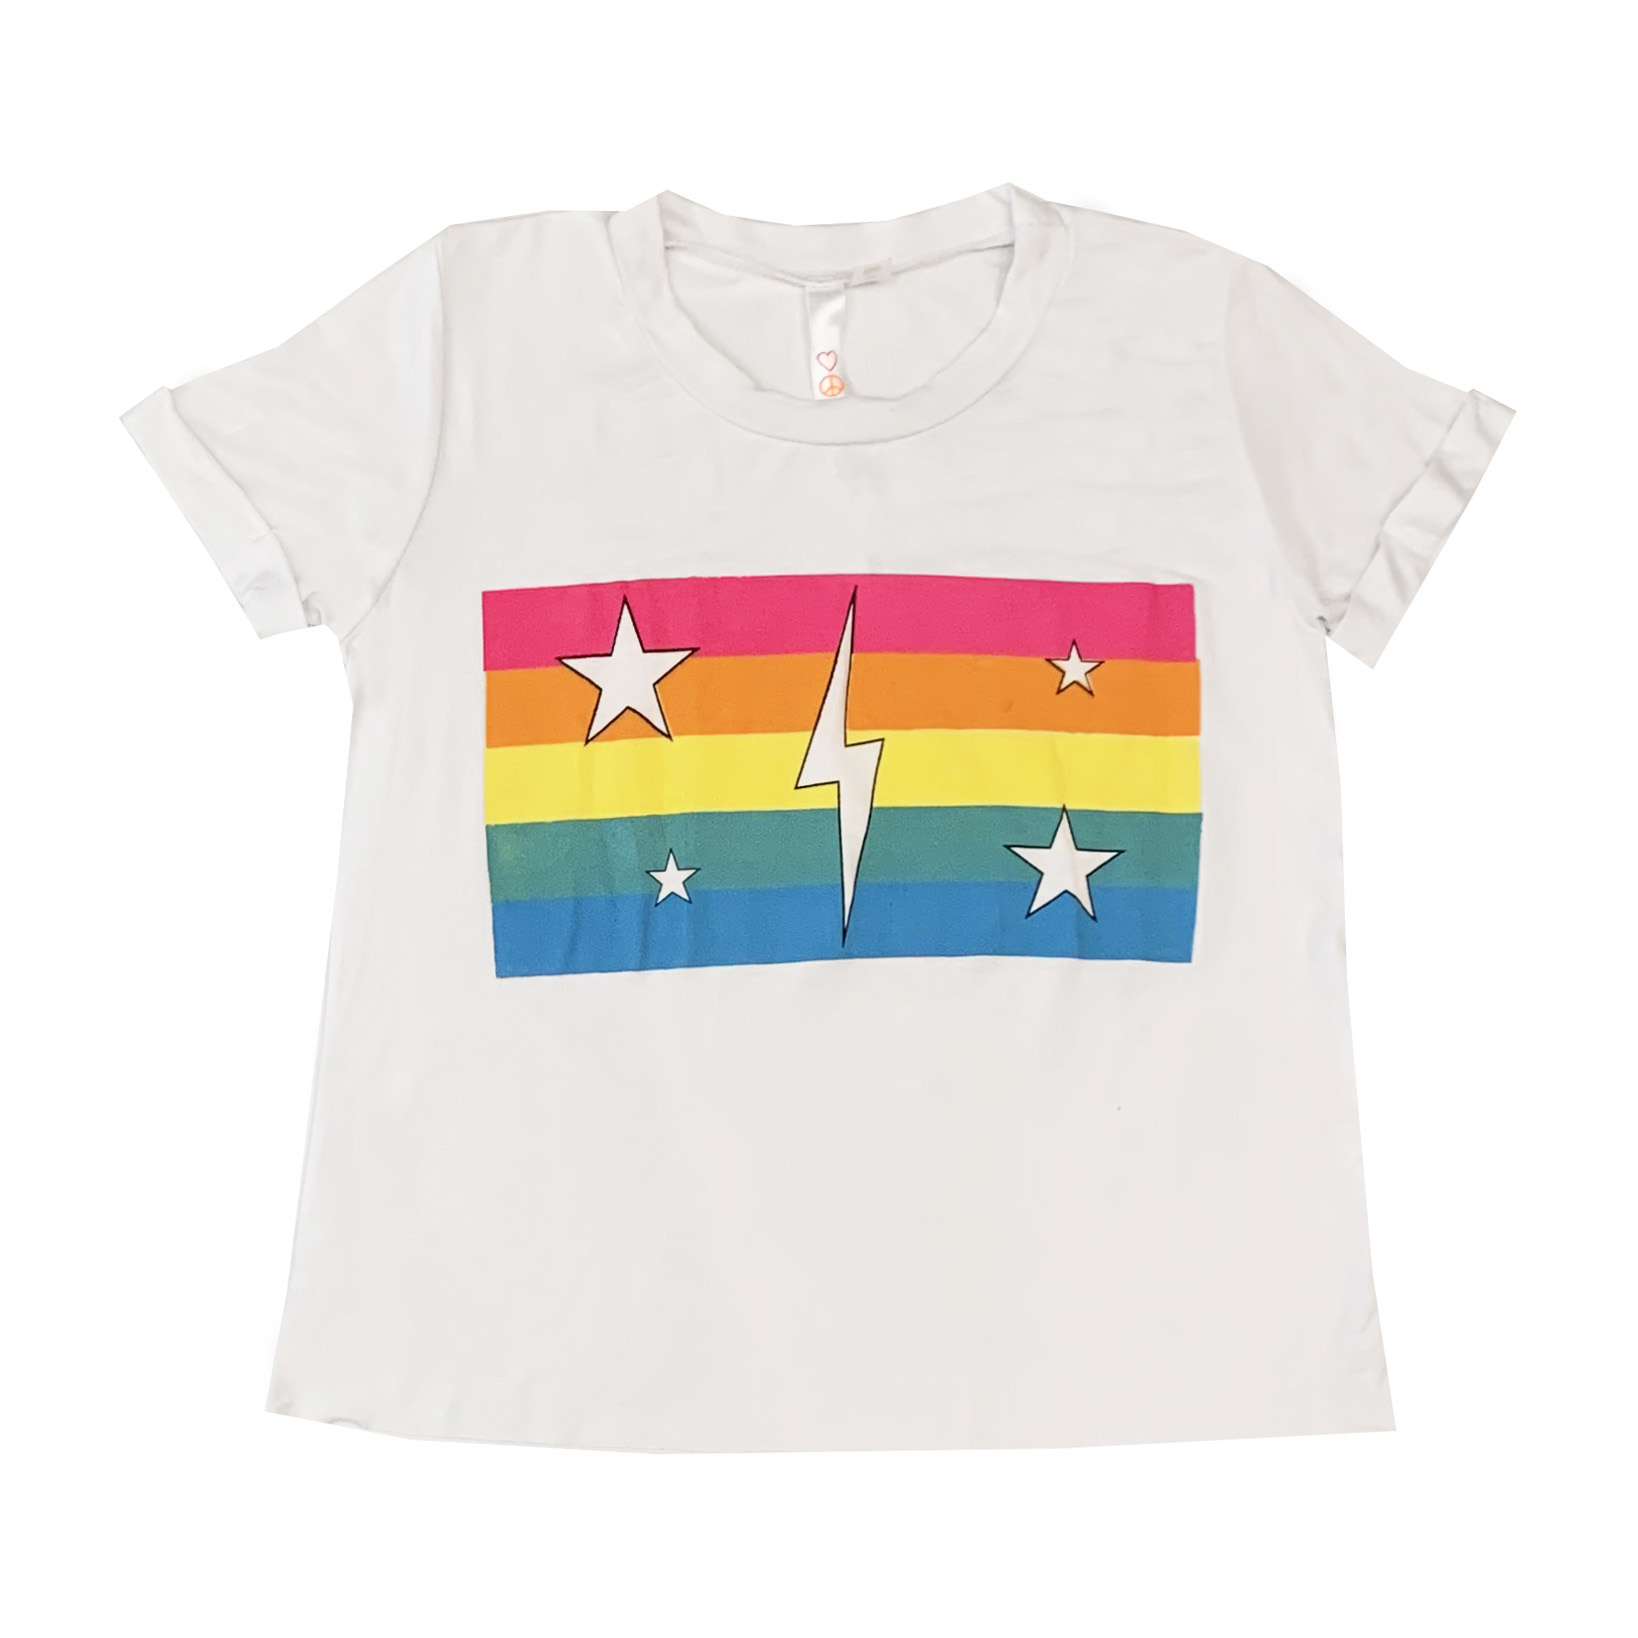 Malibu Sugar White Rainbow Stripes & Bolt Crop Tee